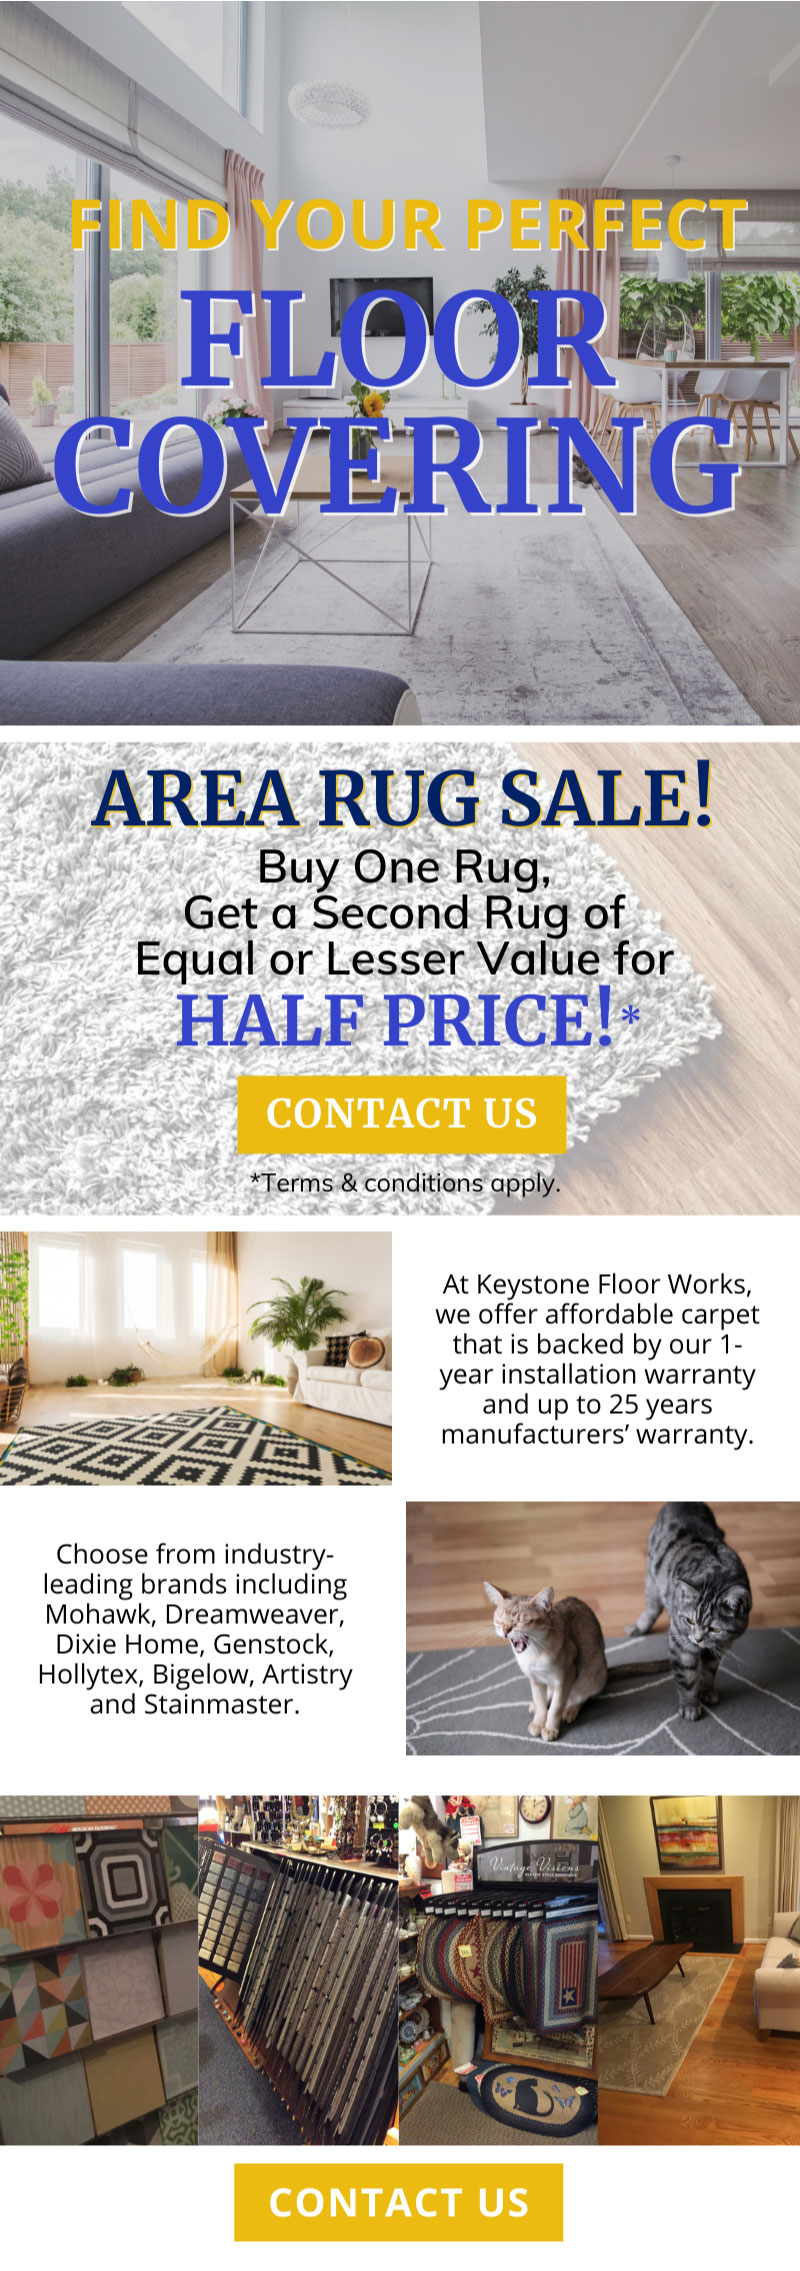 Find Your Perfect Floor Covering! ✨ 1